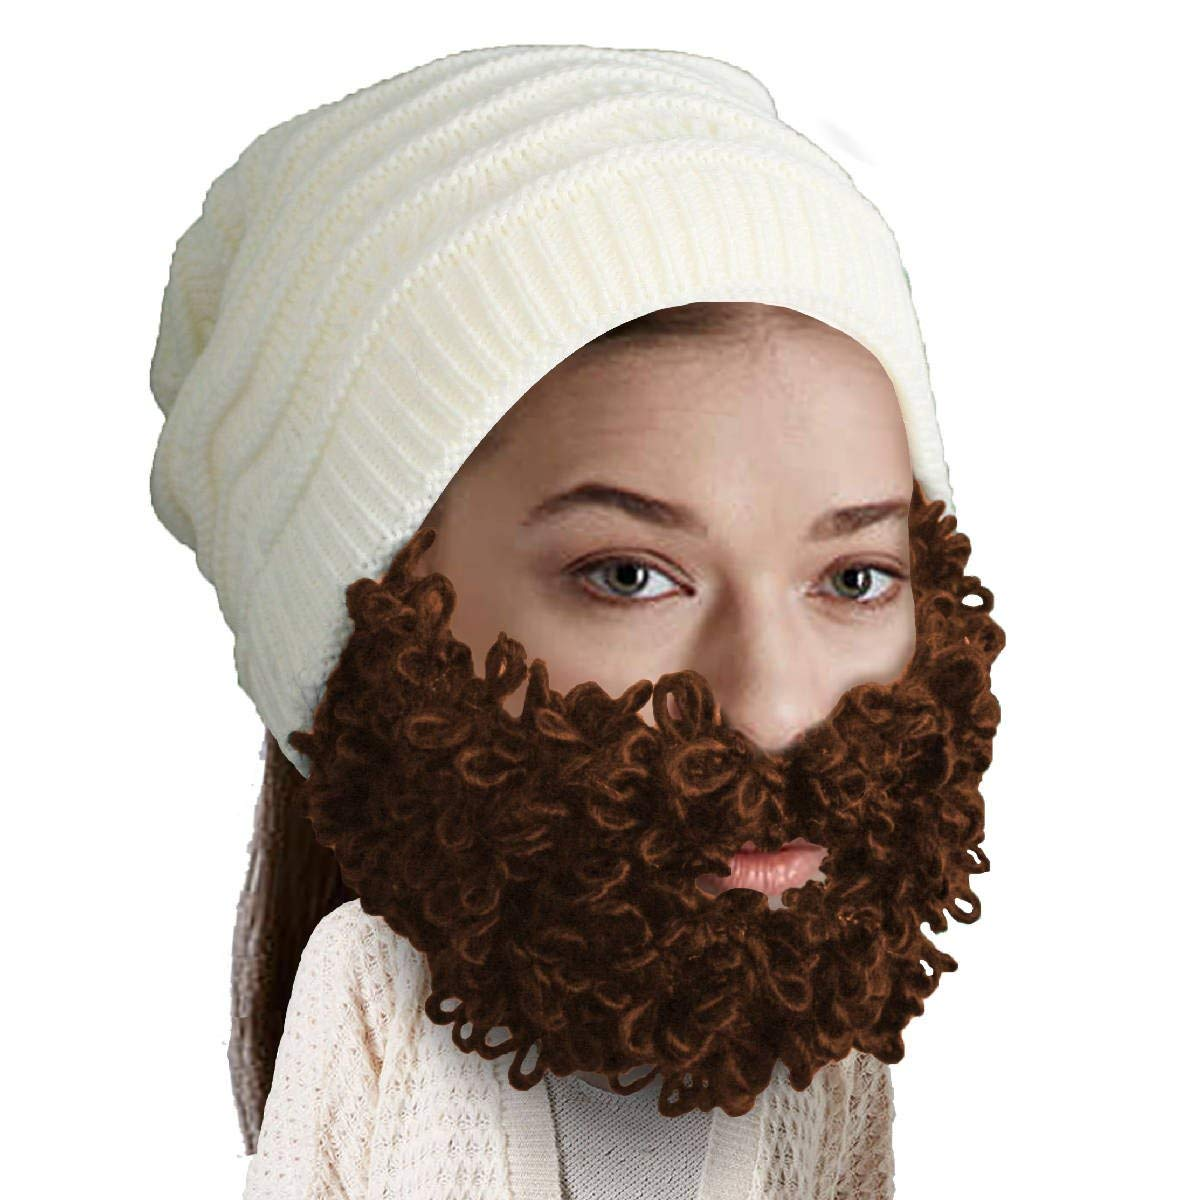 ced6f983a00 Get Quotations · Beard Head - The Original Curly Pearl Knit Beard Beanie